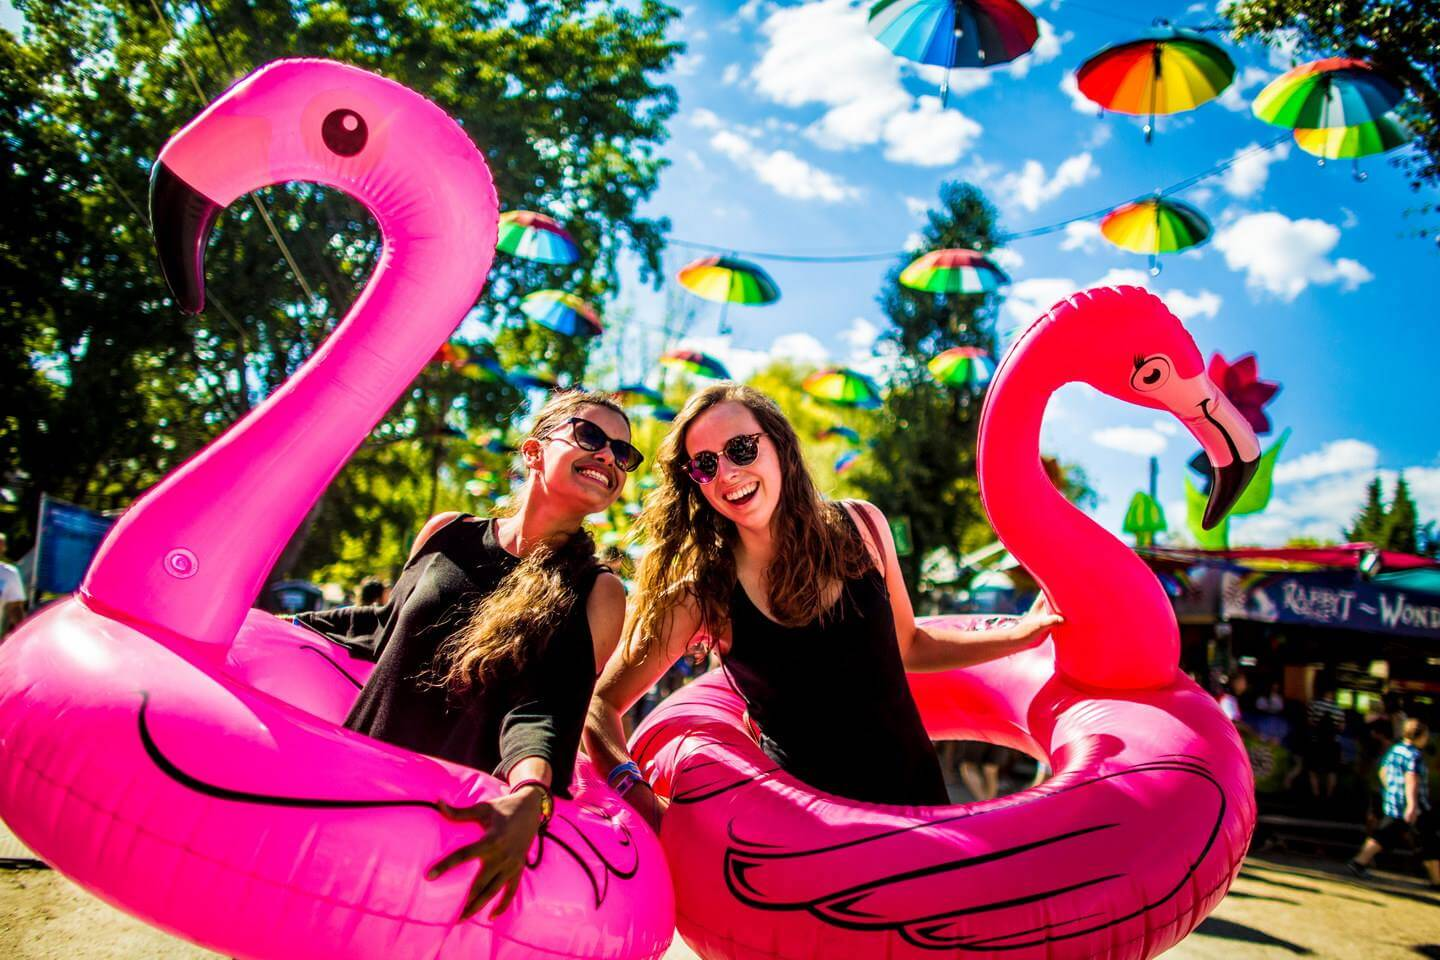 Things to do at Sziget Festival